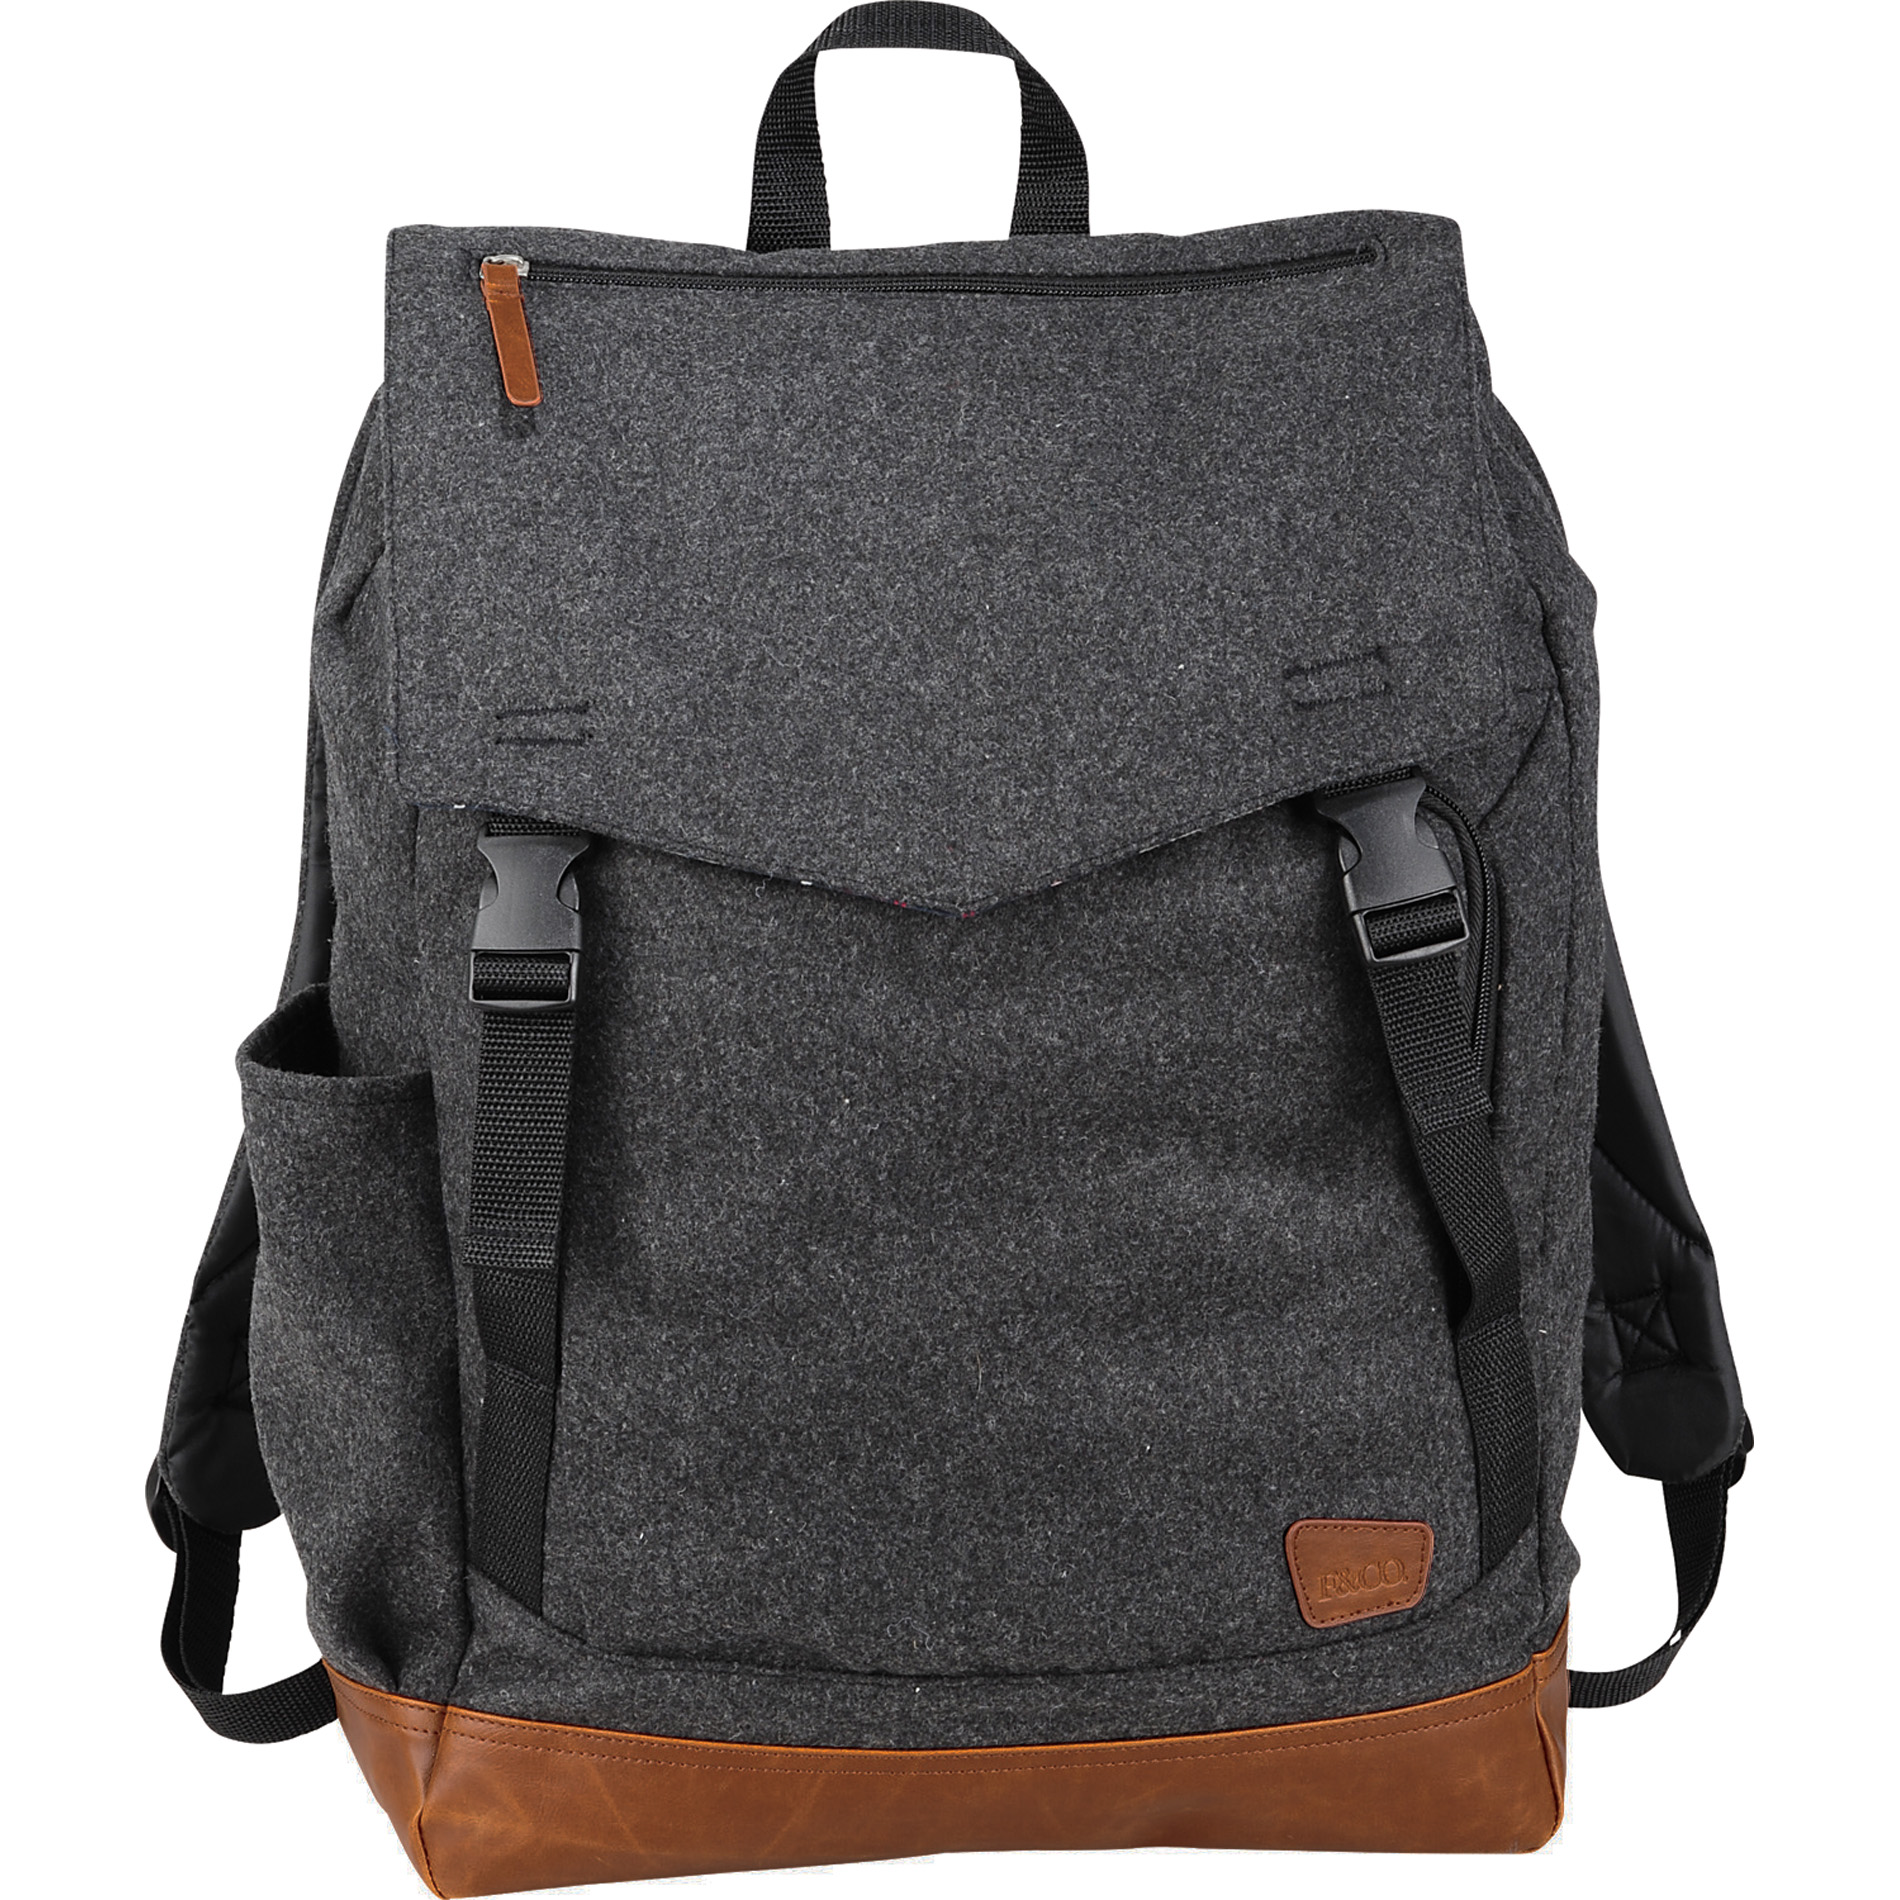 "Field & Co. 7950-72 - Campster Wool 15"" Rucksack ..."